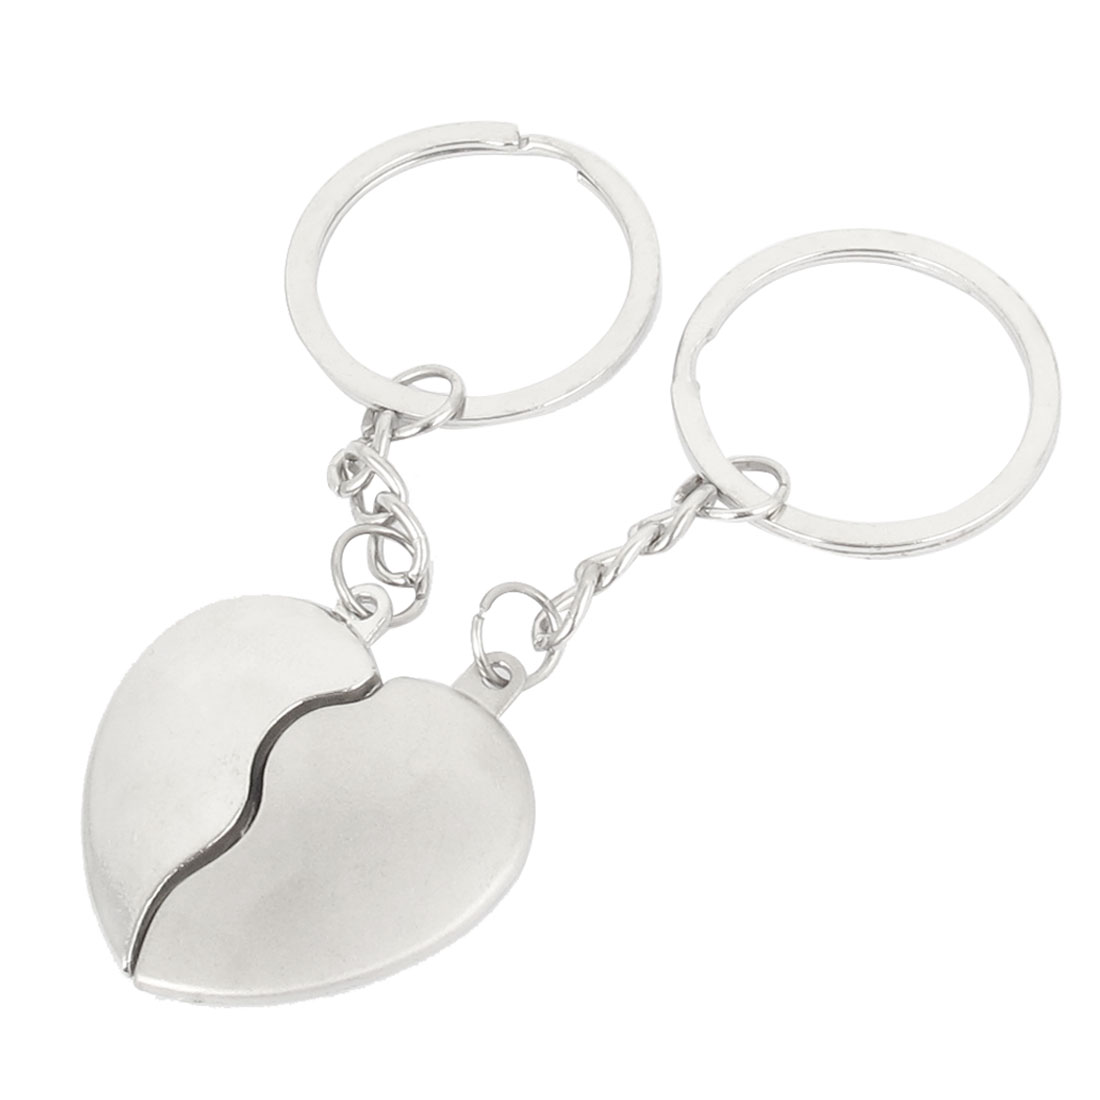 Pair Silver Tone Half Heart Design Couples Lovers Keyring Keychain Key Ring Holder